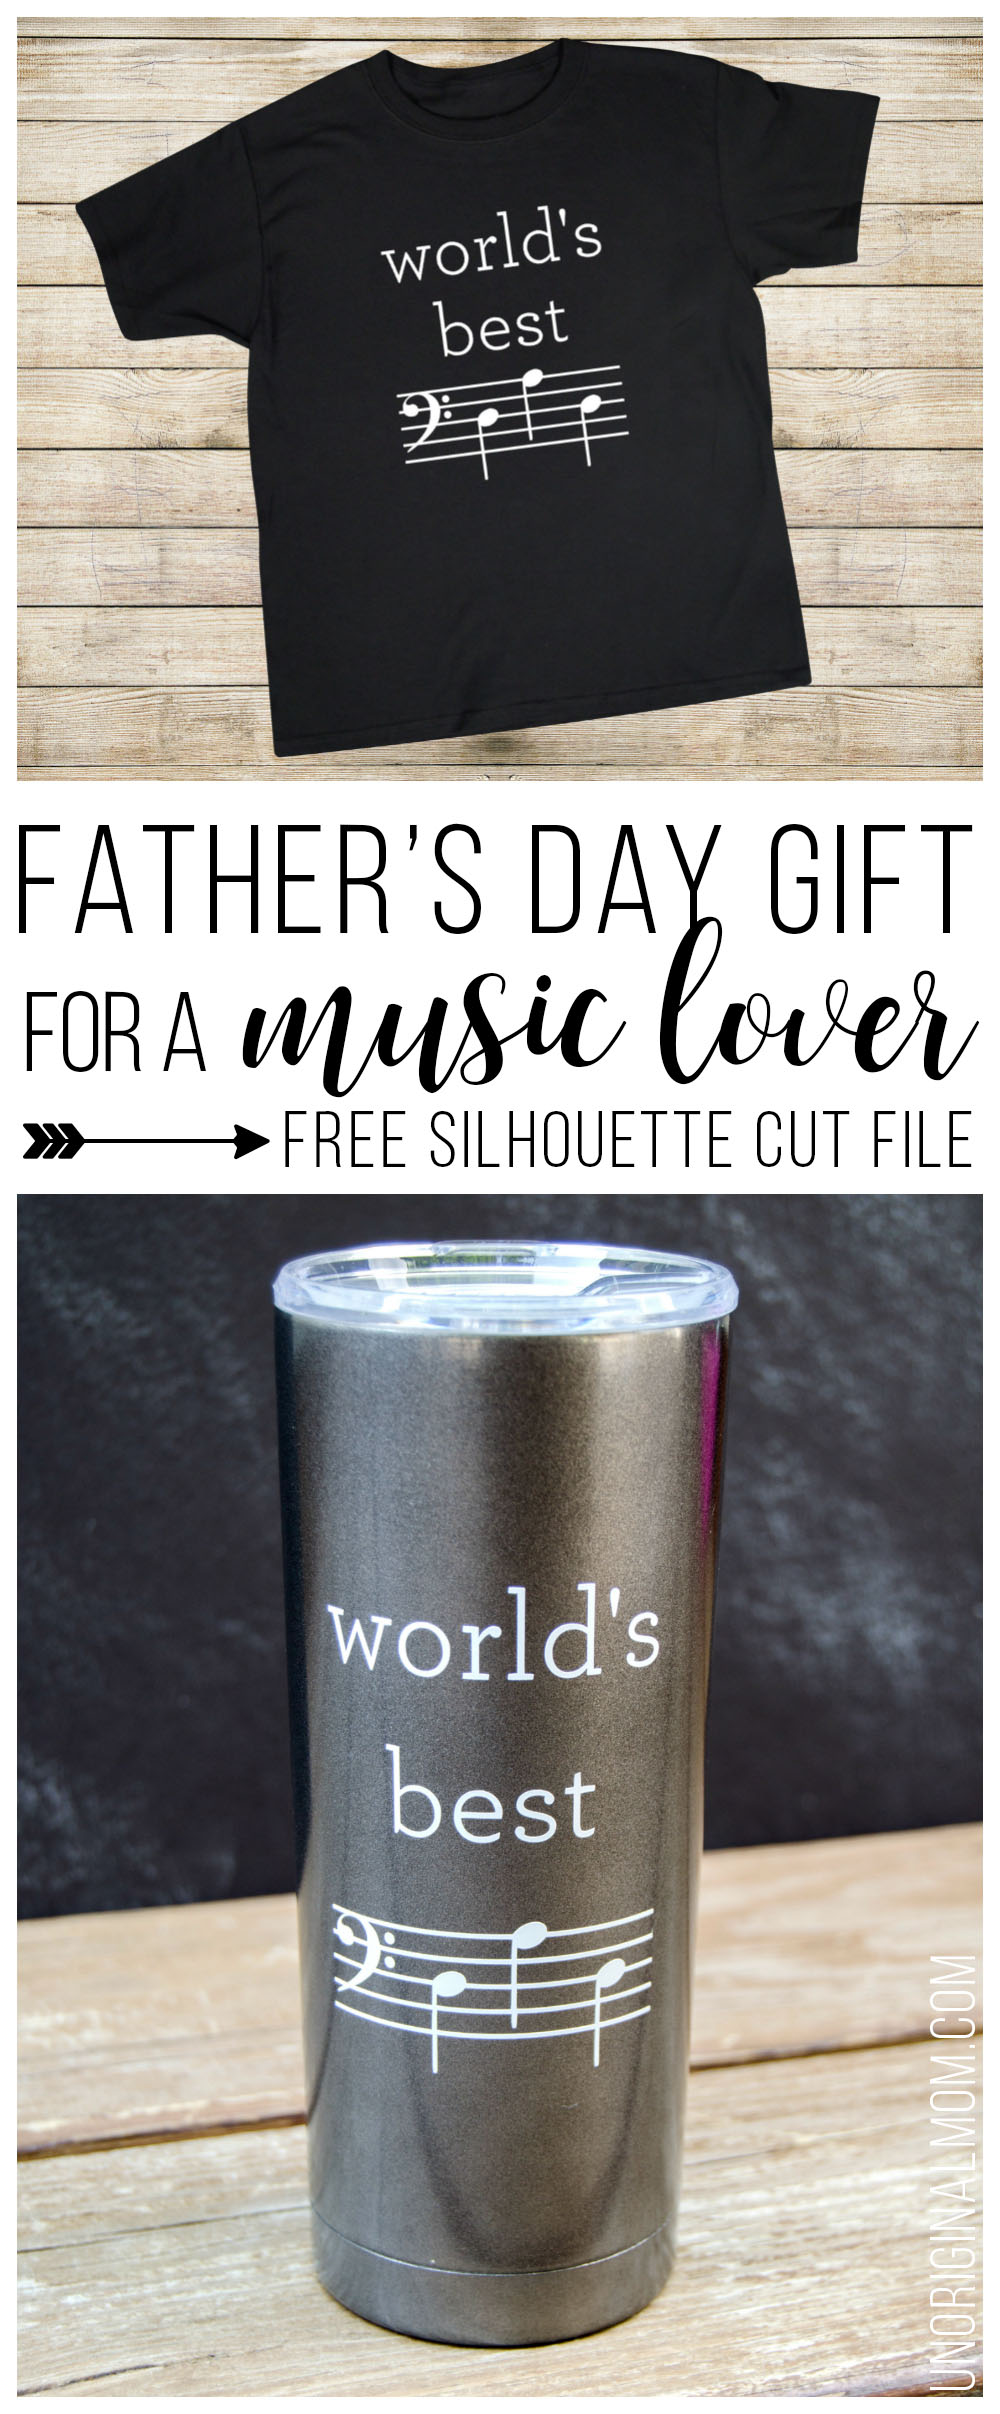 World's Best Dad mug or t-shirt for a music-loving dad - D-A-D is spelled out in music notes! Free Silhouette cut file, too! | world's best dad | music loving dad | musical father's day gift | bass clef d-a-d | father's day silhouette cut file